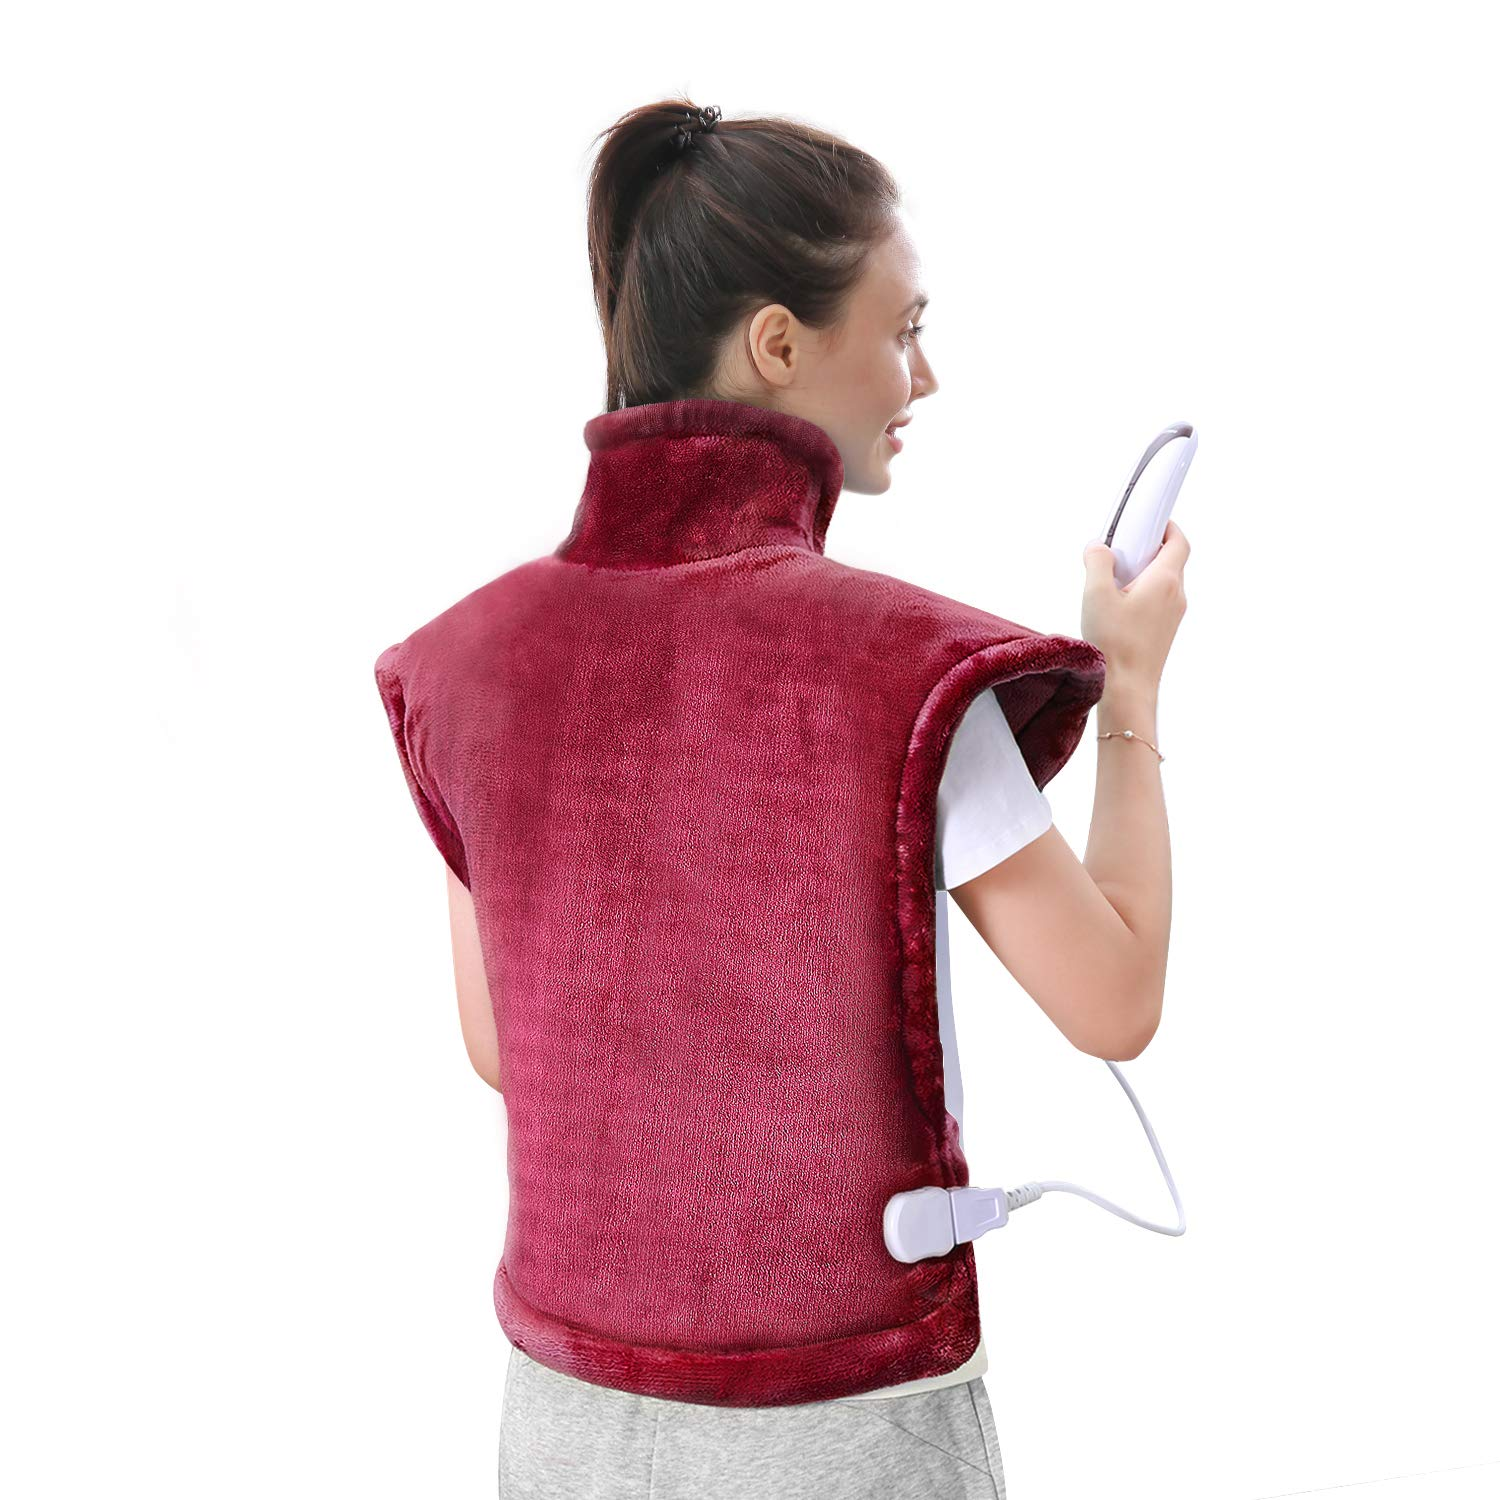 Large Heating Pad for Back and Shoulder Pain, 24''x33'' Heat Wrap with Fast-Heating and 5 Heat Settings for Sport Sorness and Cramps Relief, Auto Shut Off Available-Crimson by MaxKare